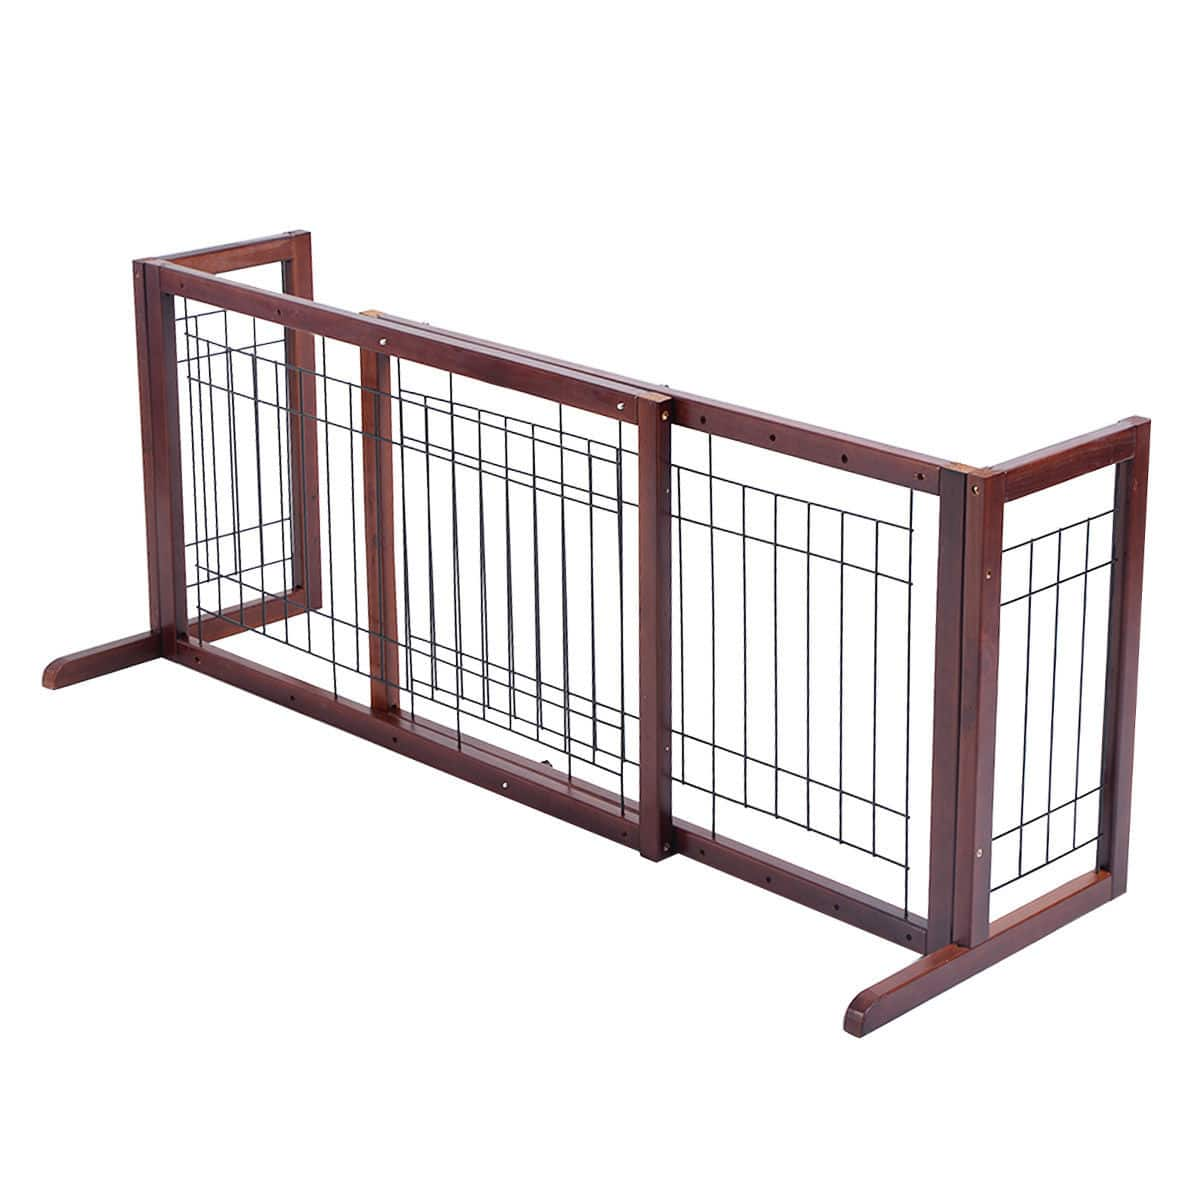 Cosway Wood Gate Adjustable Pet Fence Playpen - $48.95 + Free Shipping